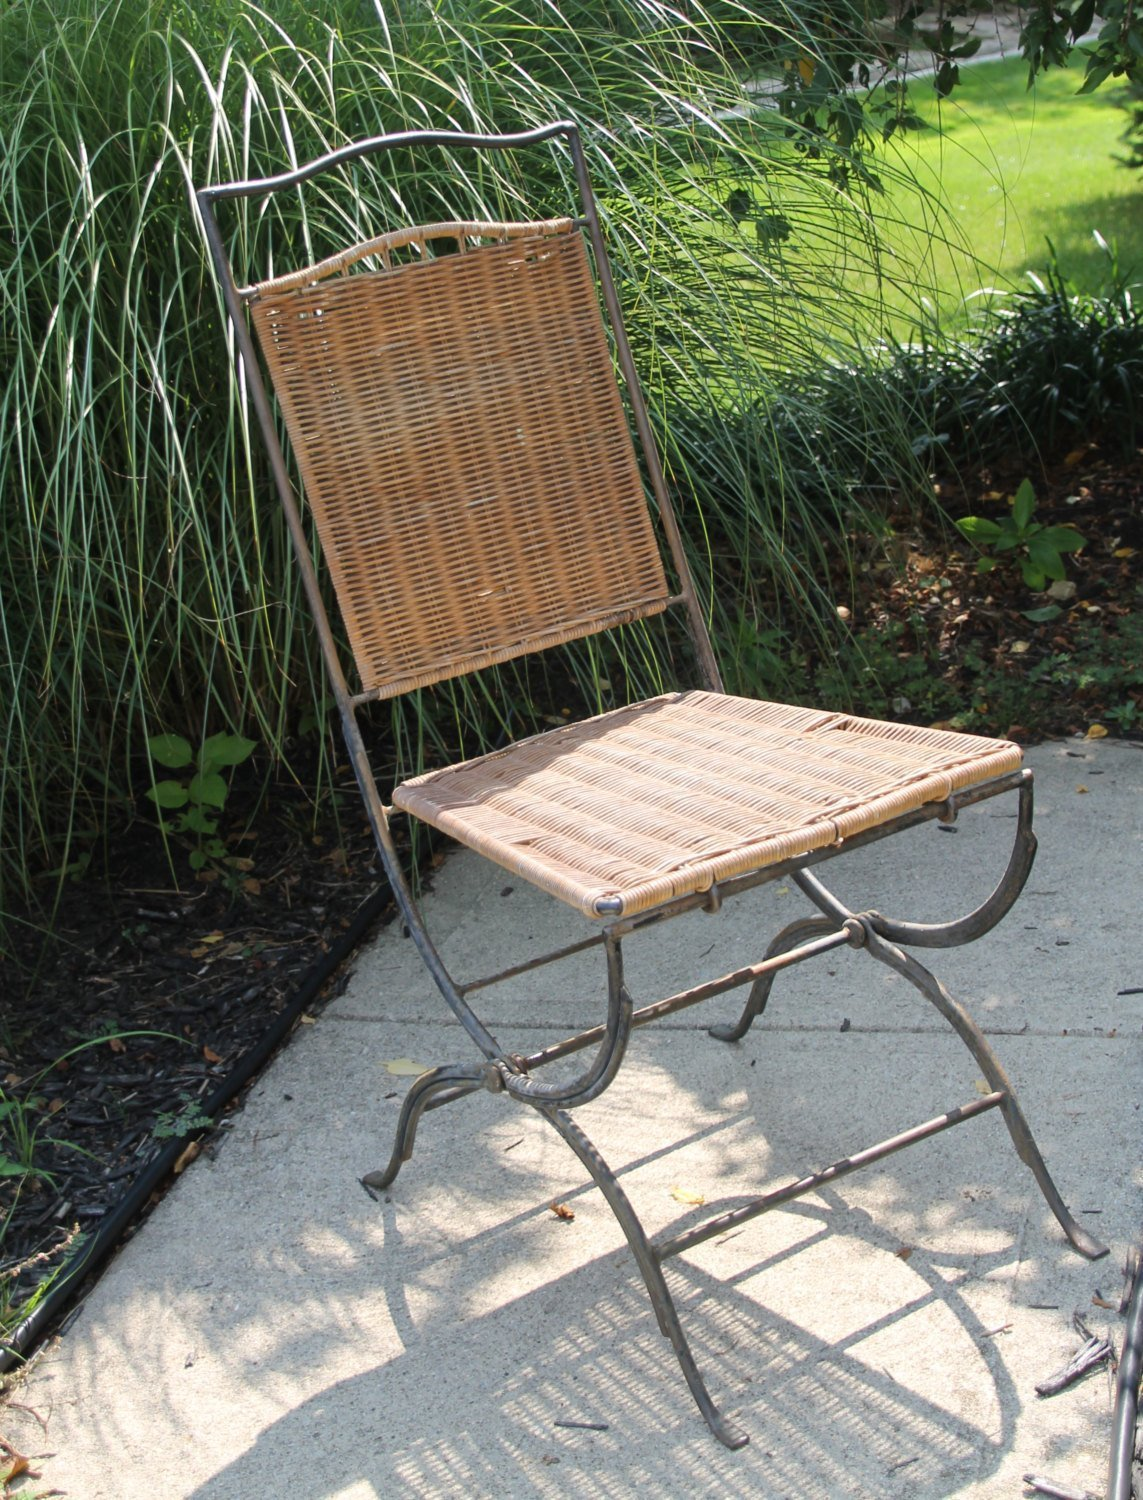 Vintage Wicker Rattan Chair Mid Century Modern Seating With Wrought